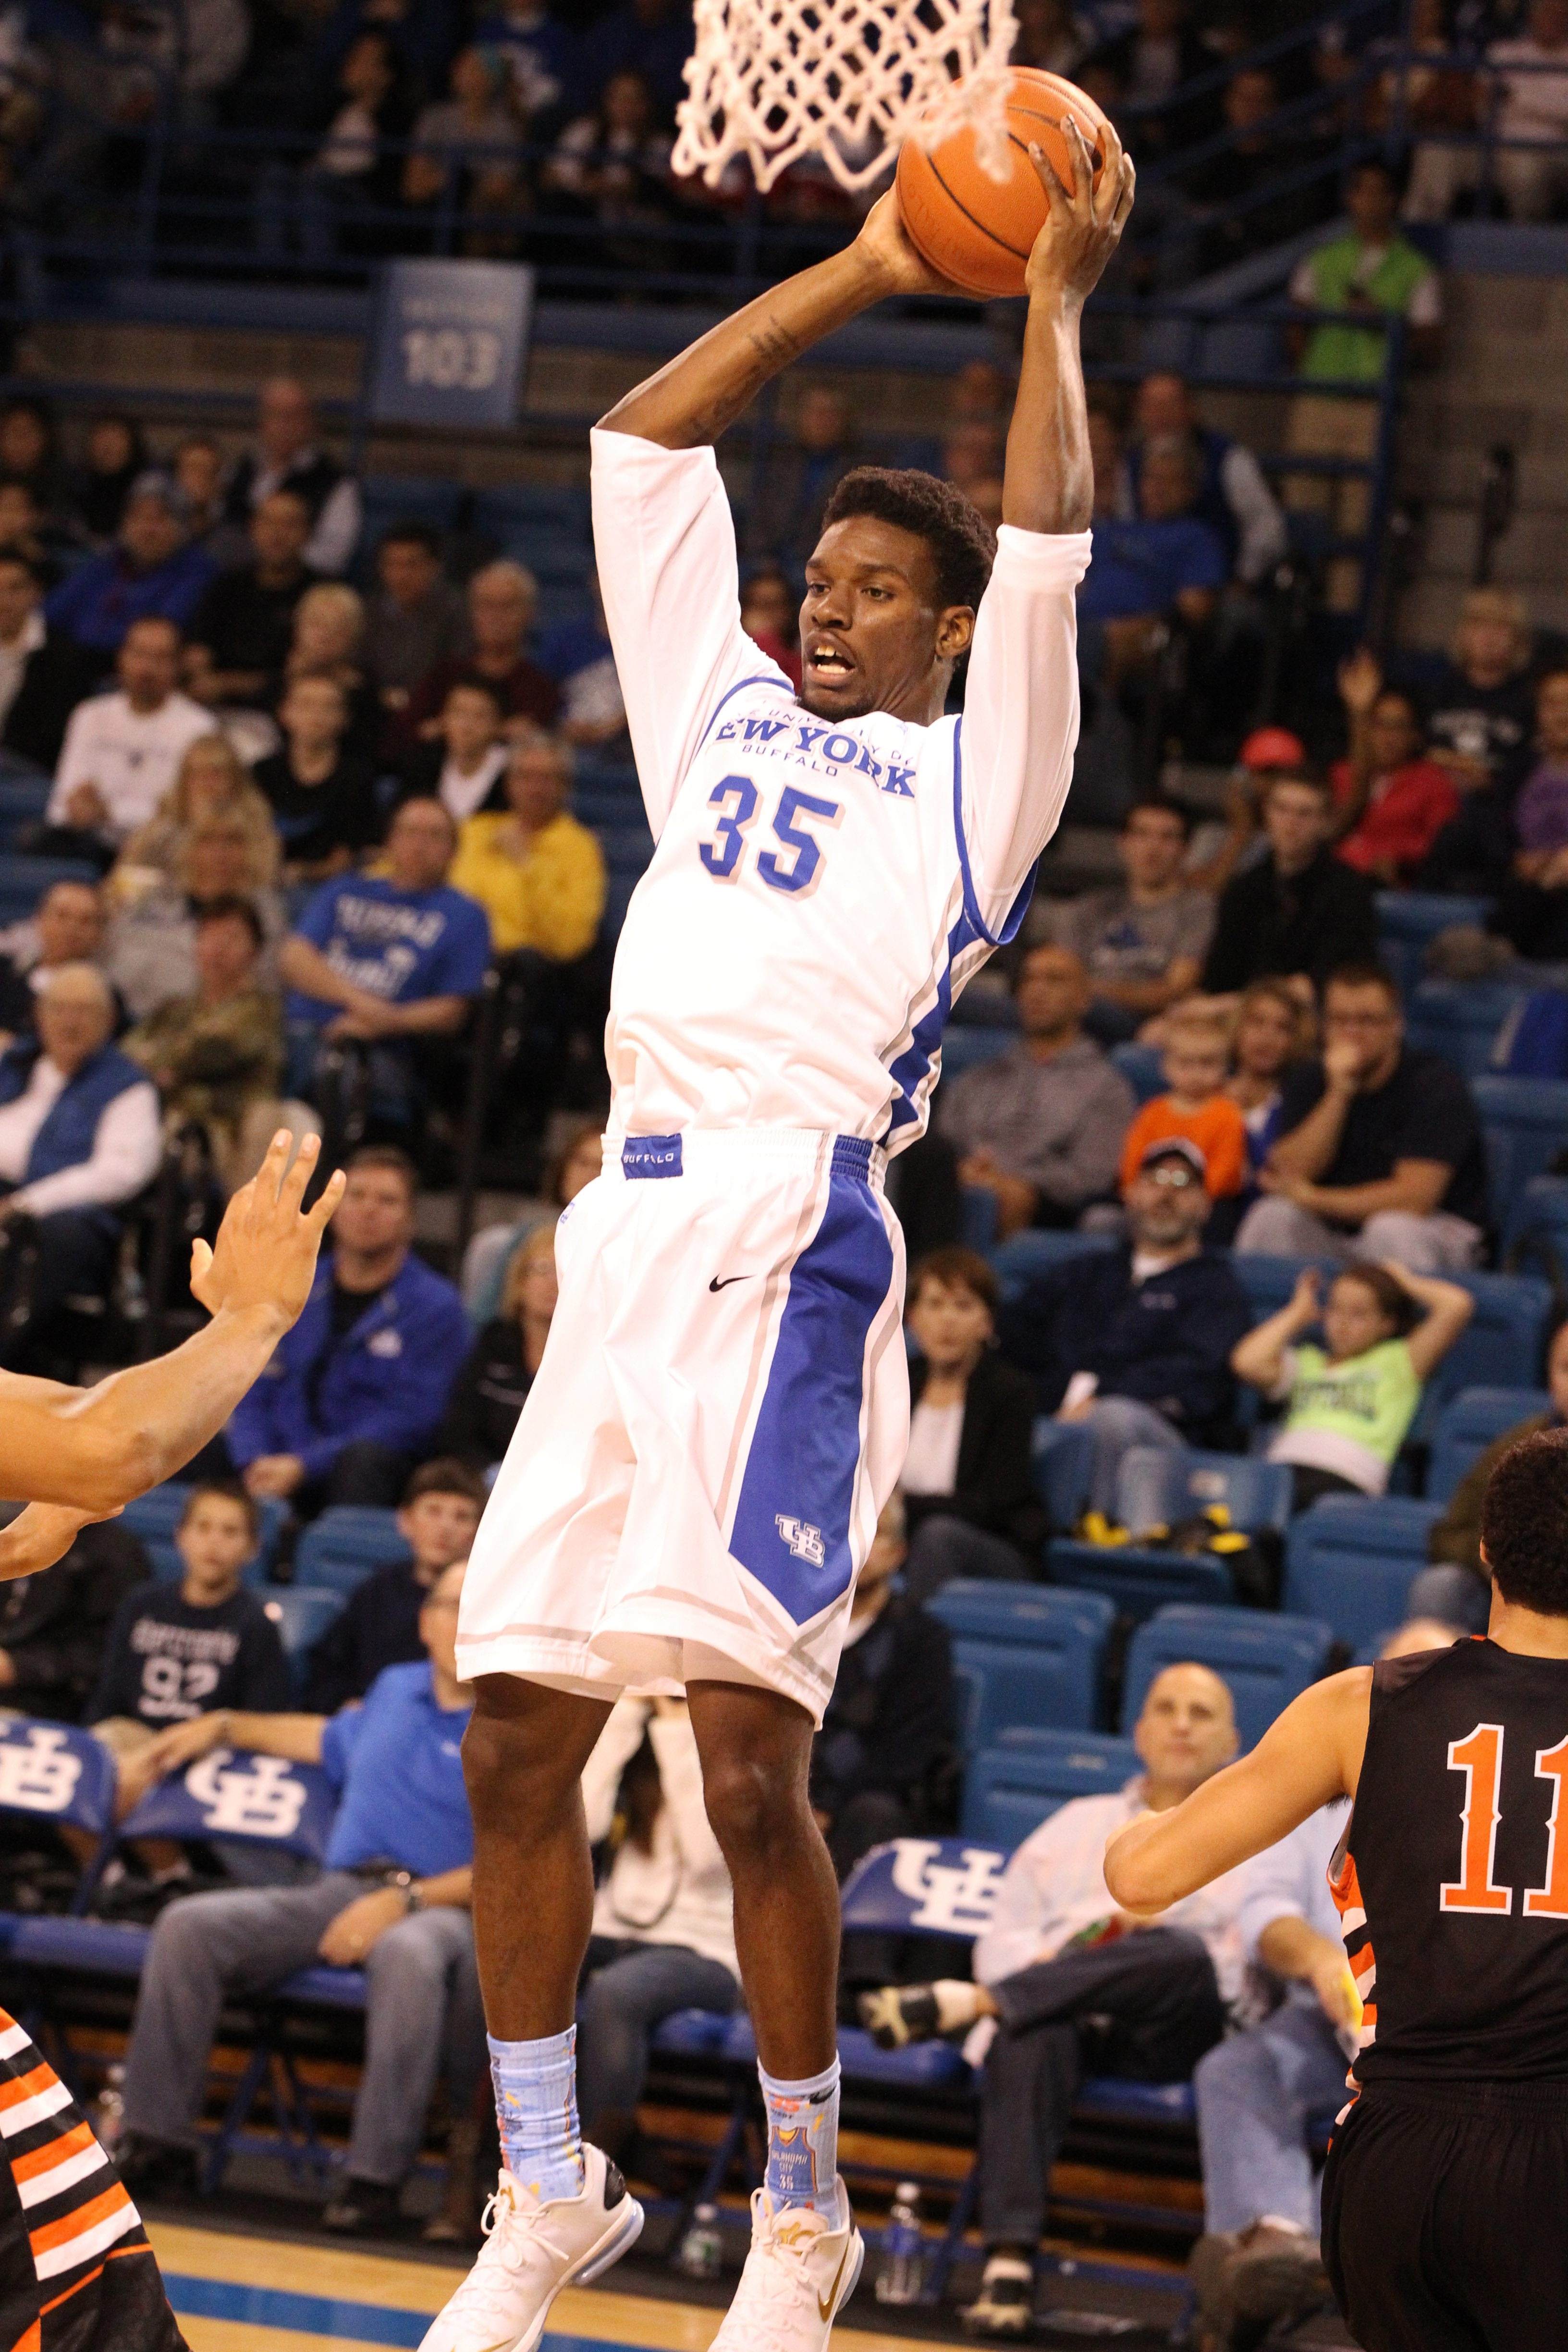 Buffalo Bulls forward Xavier Ford (35) scored 14 points on 6-of-9 shooting and grabbed two rebounds in 19 minutes during UB's win over West Virginia Wesleyan.  (James P. McCoy/ Buffalo News)